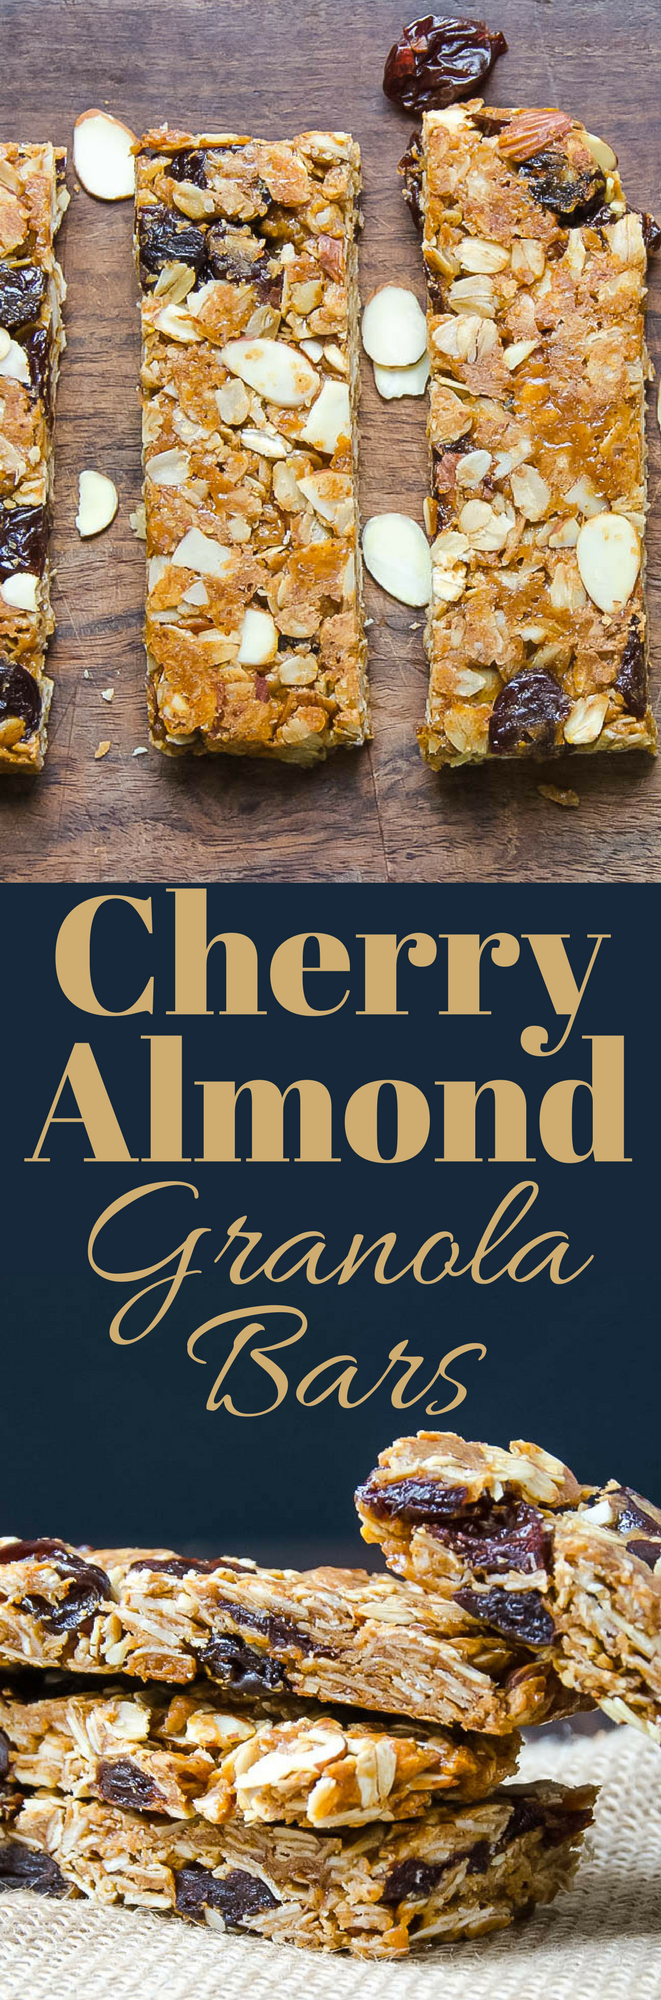 This easy recipe for Cherry Almond Granola Bars makes a great on-the-go breakfast or a healthy afternoon snack. Make them in under an hour!